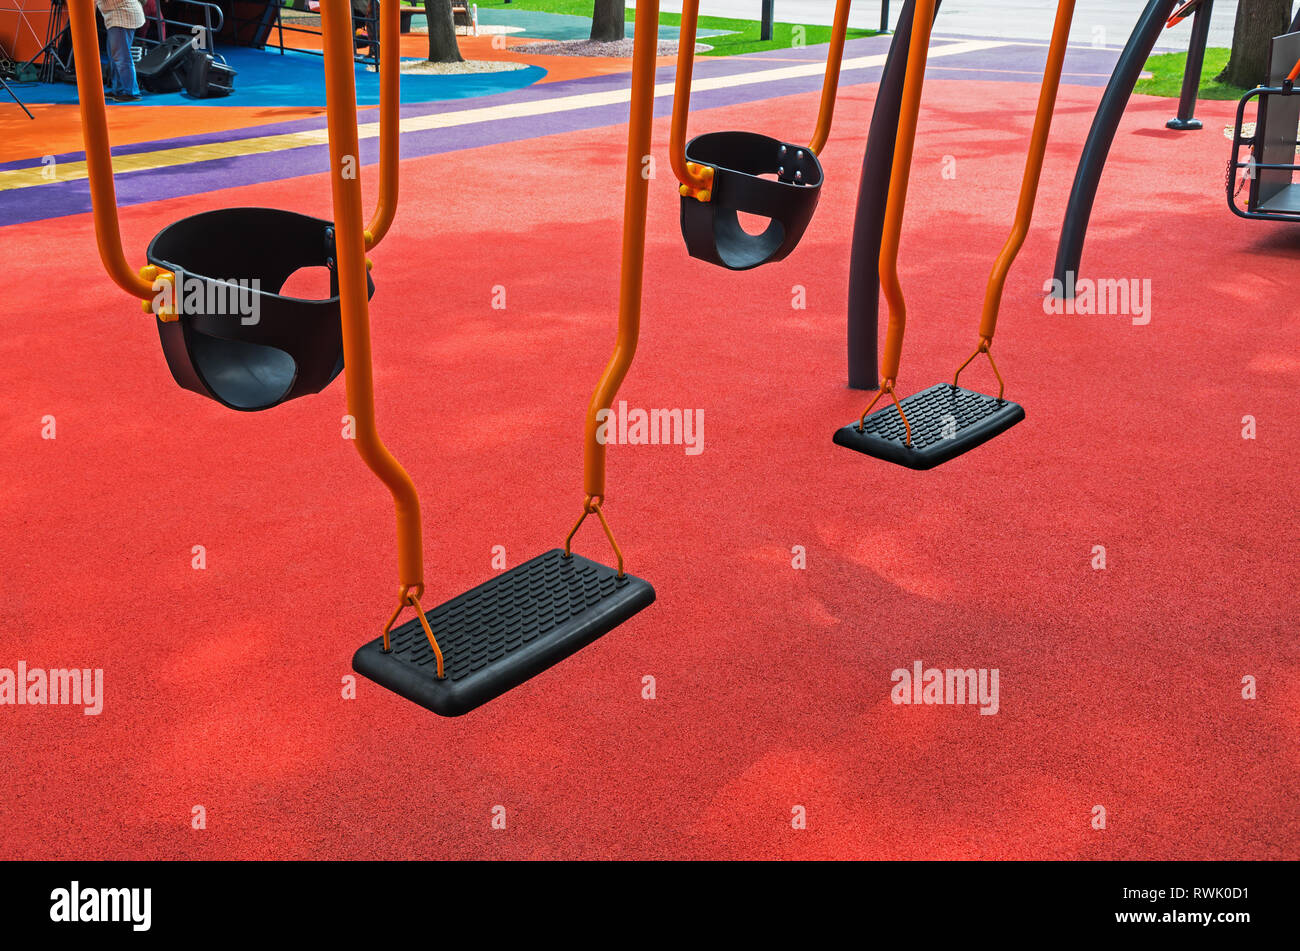 New swings for children with special needs on which you can swing parents and children at the same time - Stock Image